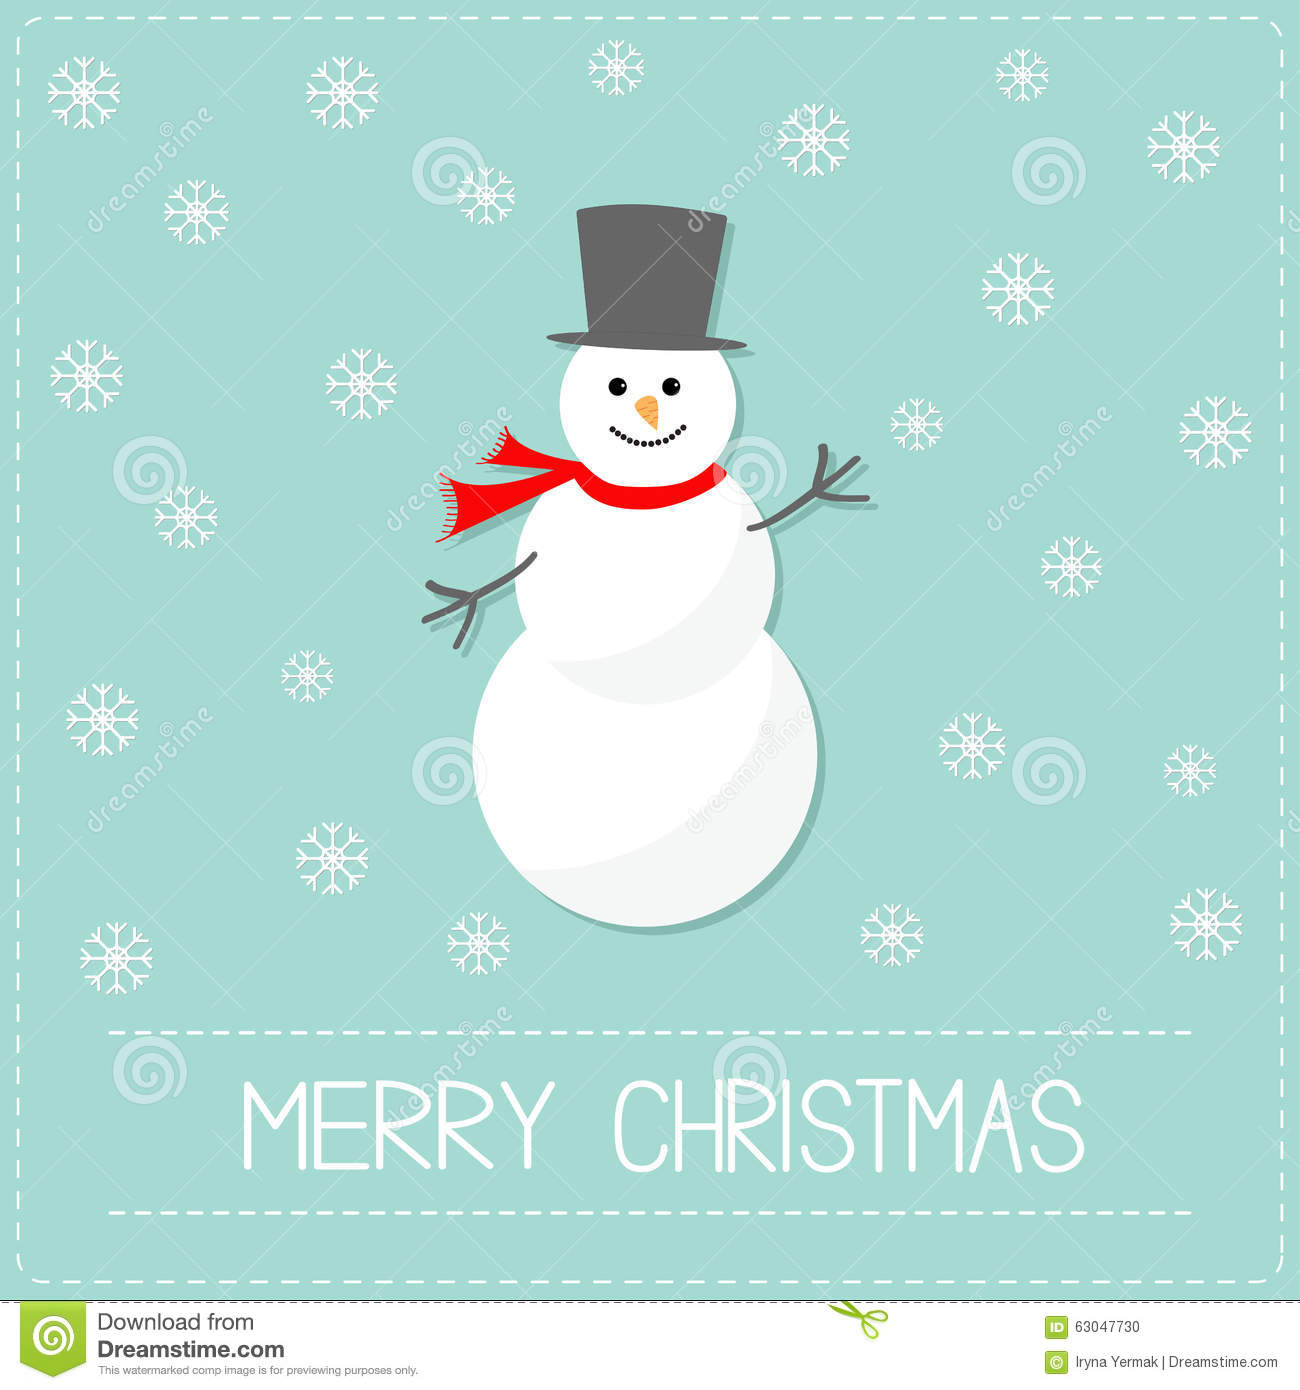 Cartoon snowman and snowflakes blue background merry